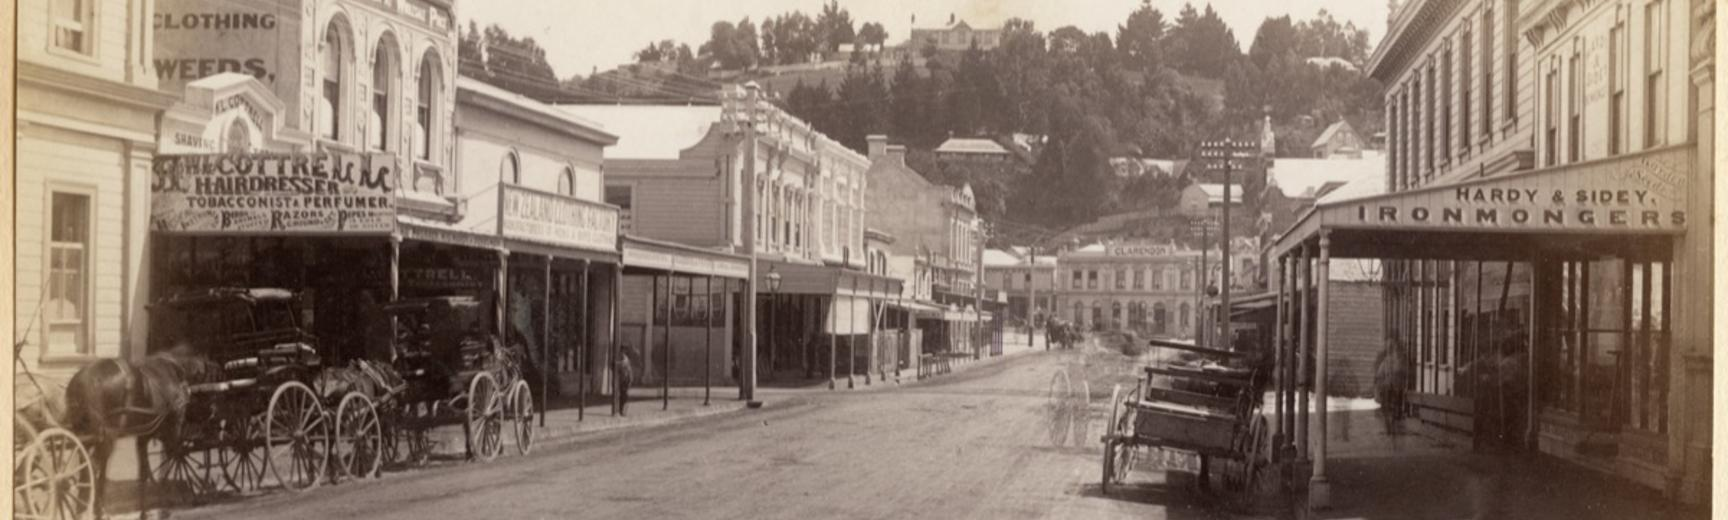 Horse-drawn vehicles stationed outside buildings on Hastings Street in Napier. Photograph by Alfred Burton for the Burton Brothers (Dunedin). Napier, North Island, New Zealand. Circa 1885.